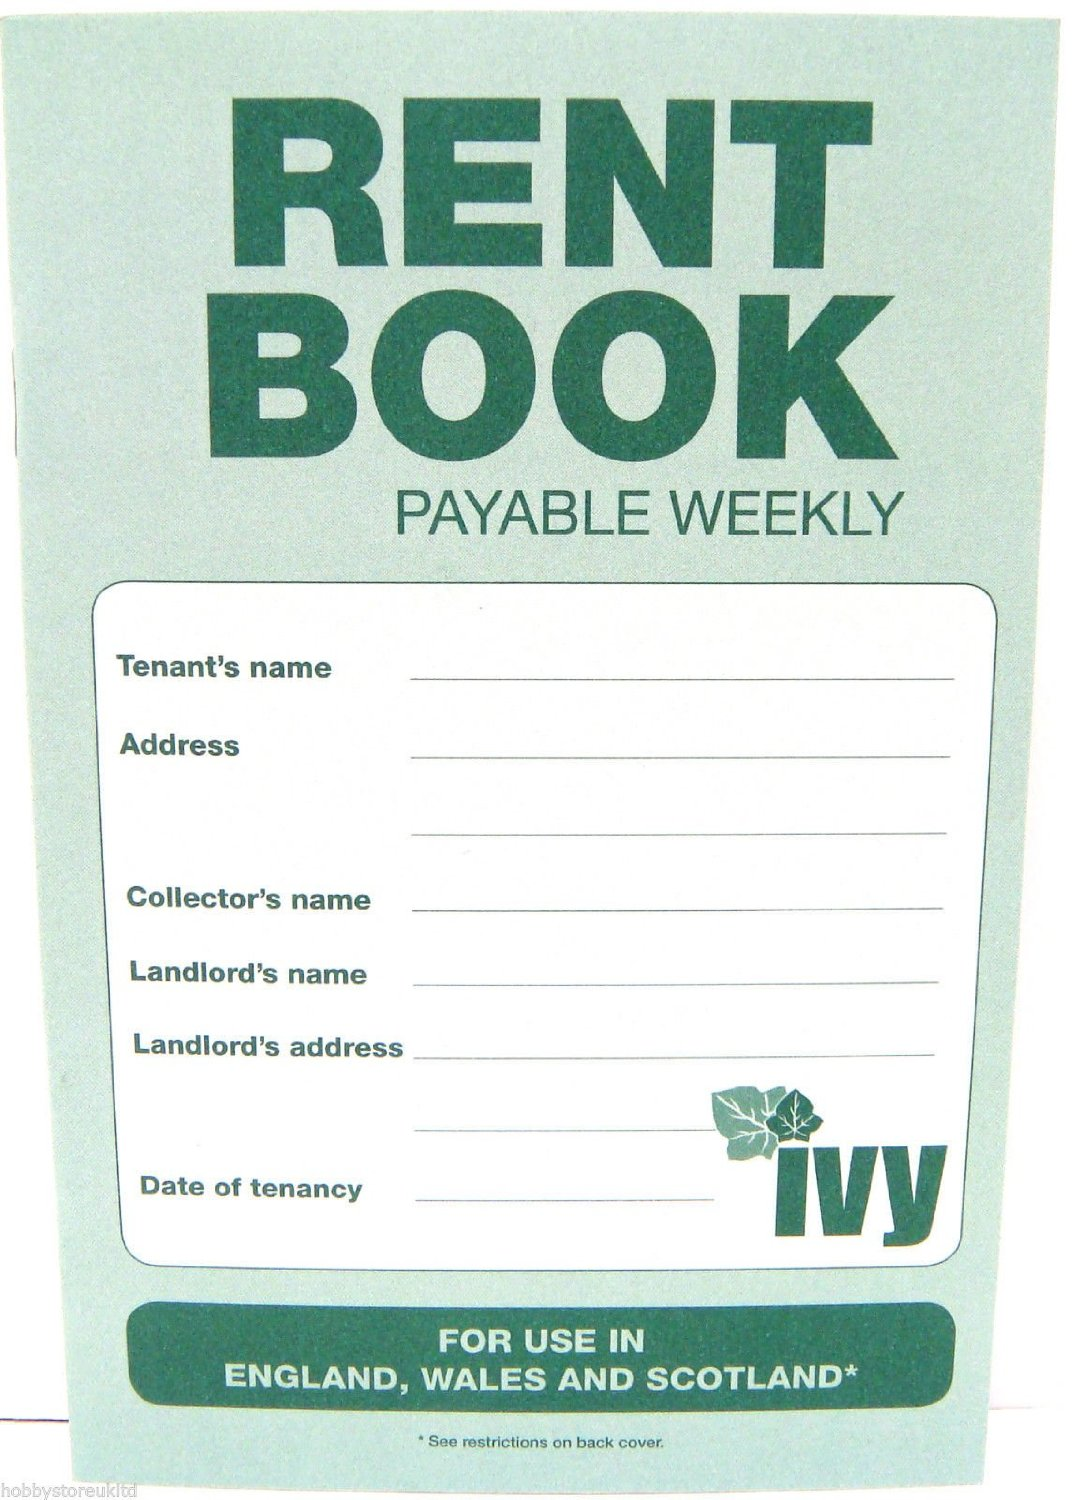 Weekly Rent Book Shorthold Rent Cash Book Payable Weekly Rent Accounts Book New